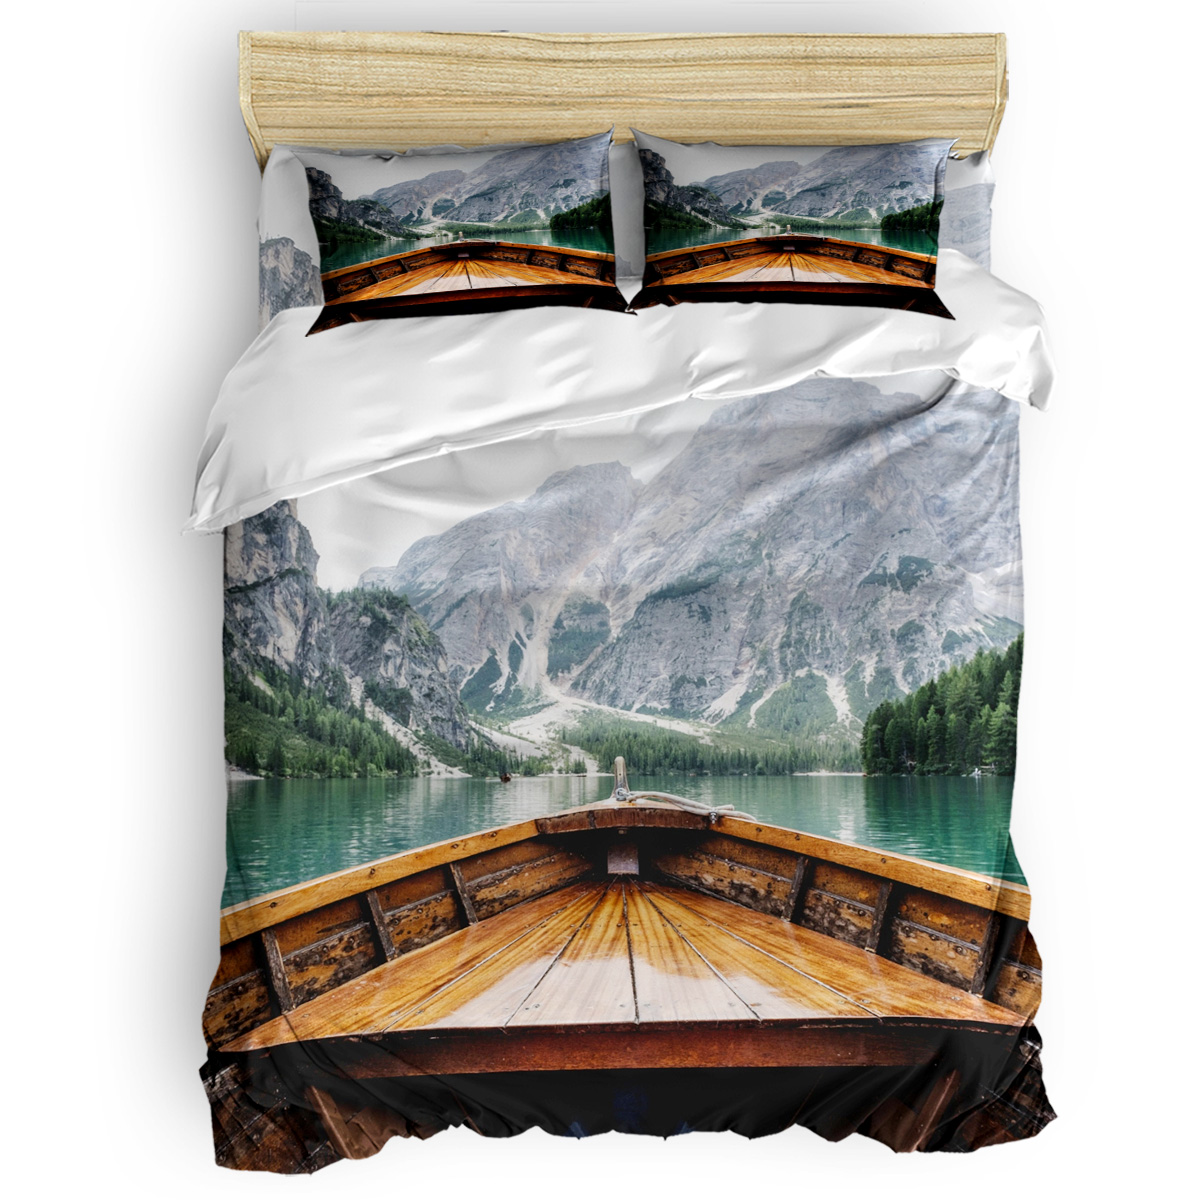 Live the Adventure  Duvet Cover Set Beautiful Lake Scenery Nature Collection of 3/4pcs Bedding Set Bed Sheet Pillowcases SetLive the Adventure  Duvet Cover Set Beautiful Lake Scenery Nature Collection of 3/4pcs Bedding Set Bed Sheet Pillowcases Set